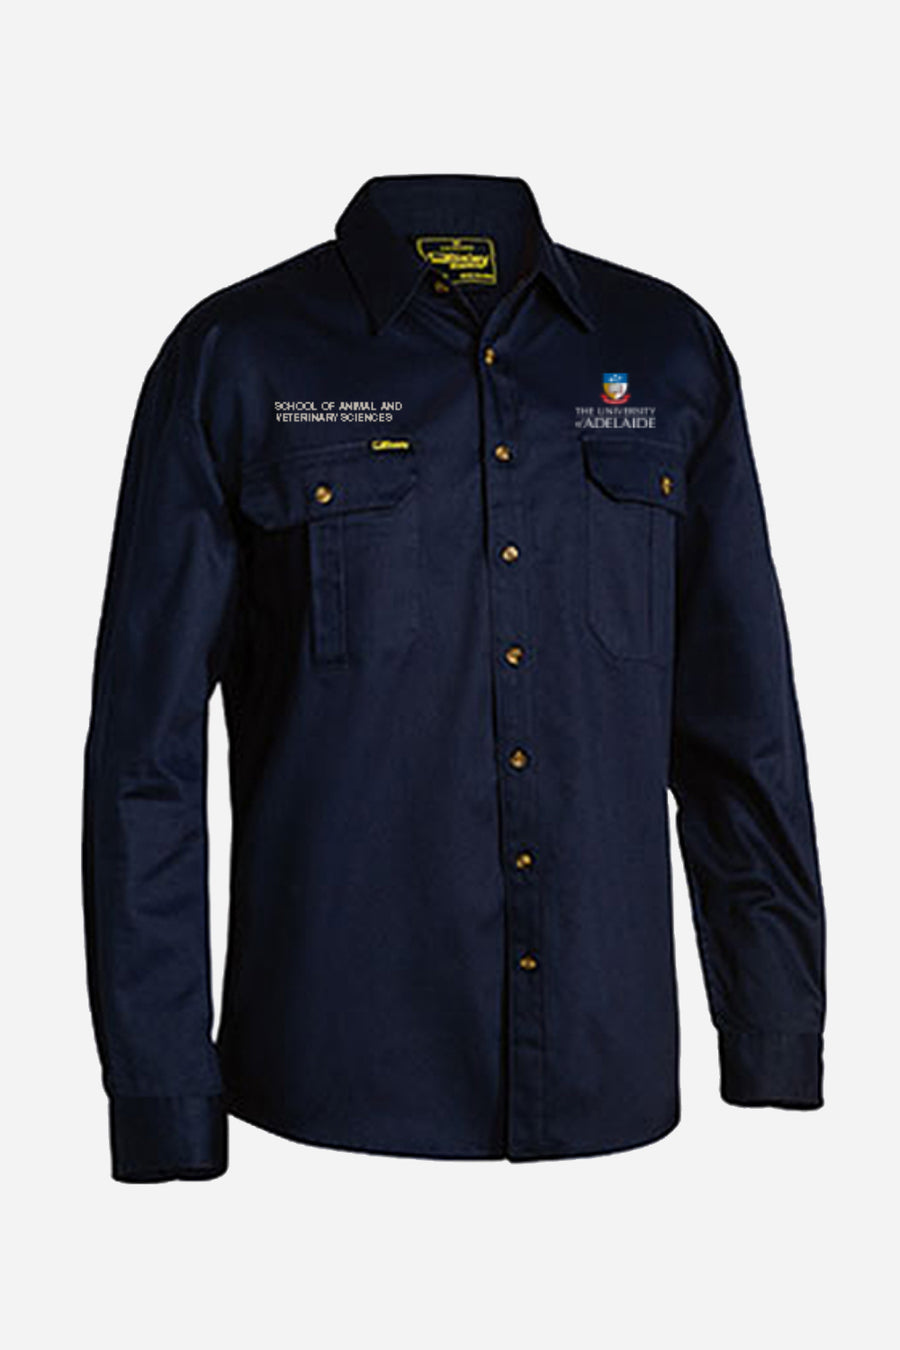 DVM navy men's drill shirt